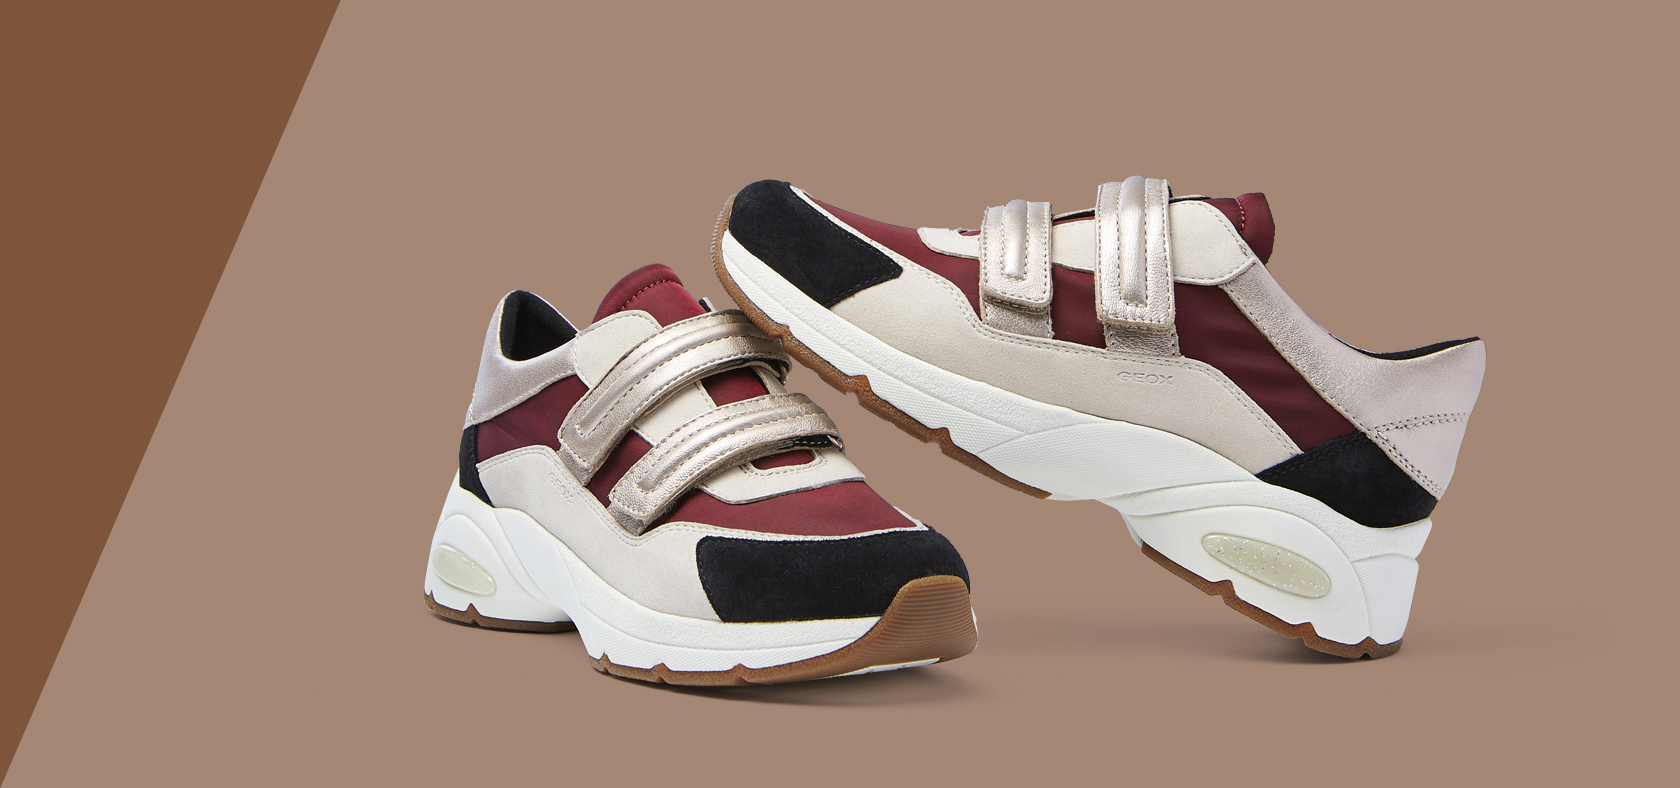 2f1be87cac8 Women's Sneakers Shoes - breathable | Geox